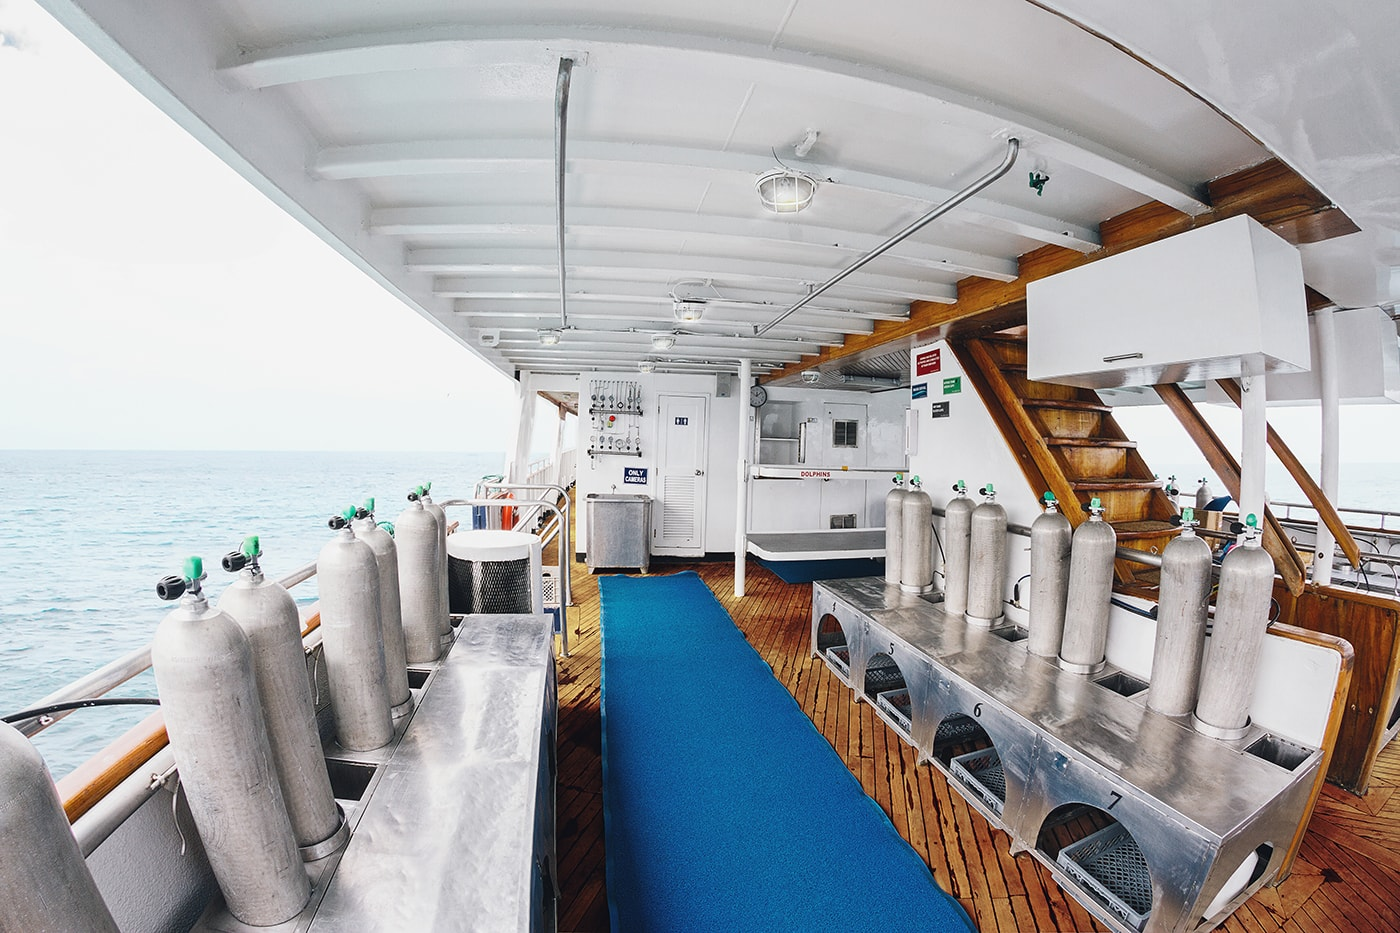 The well-organized dive deck of the Galapagos Sky provides each diver with ample space for gearing up, along with personal storage space below the bench.